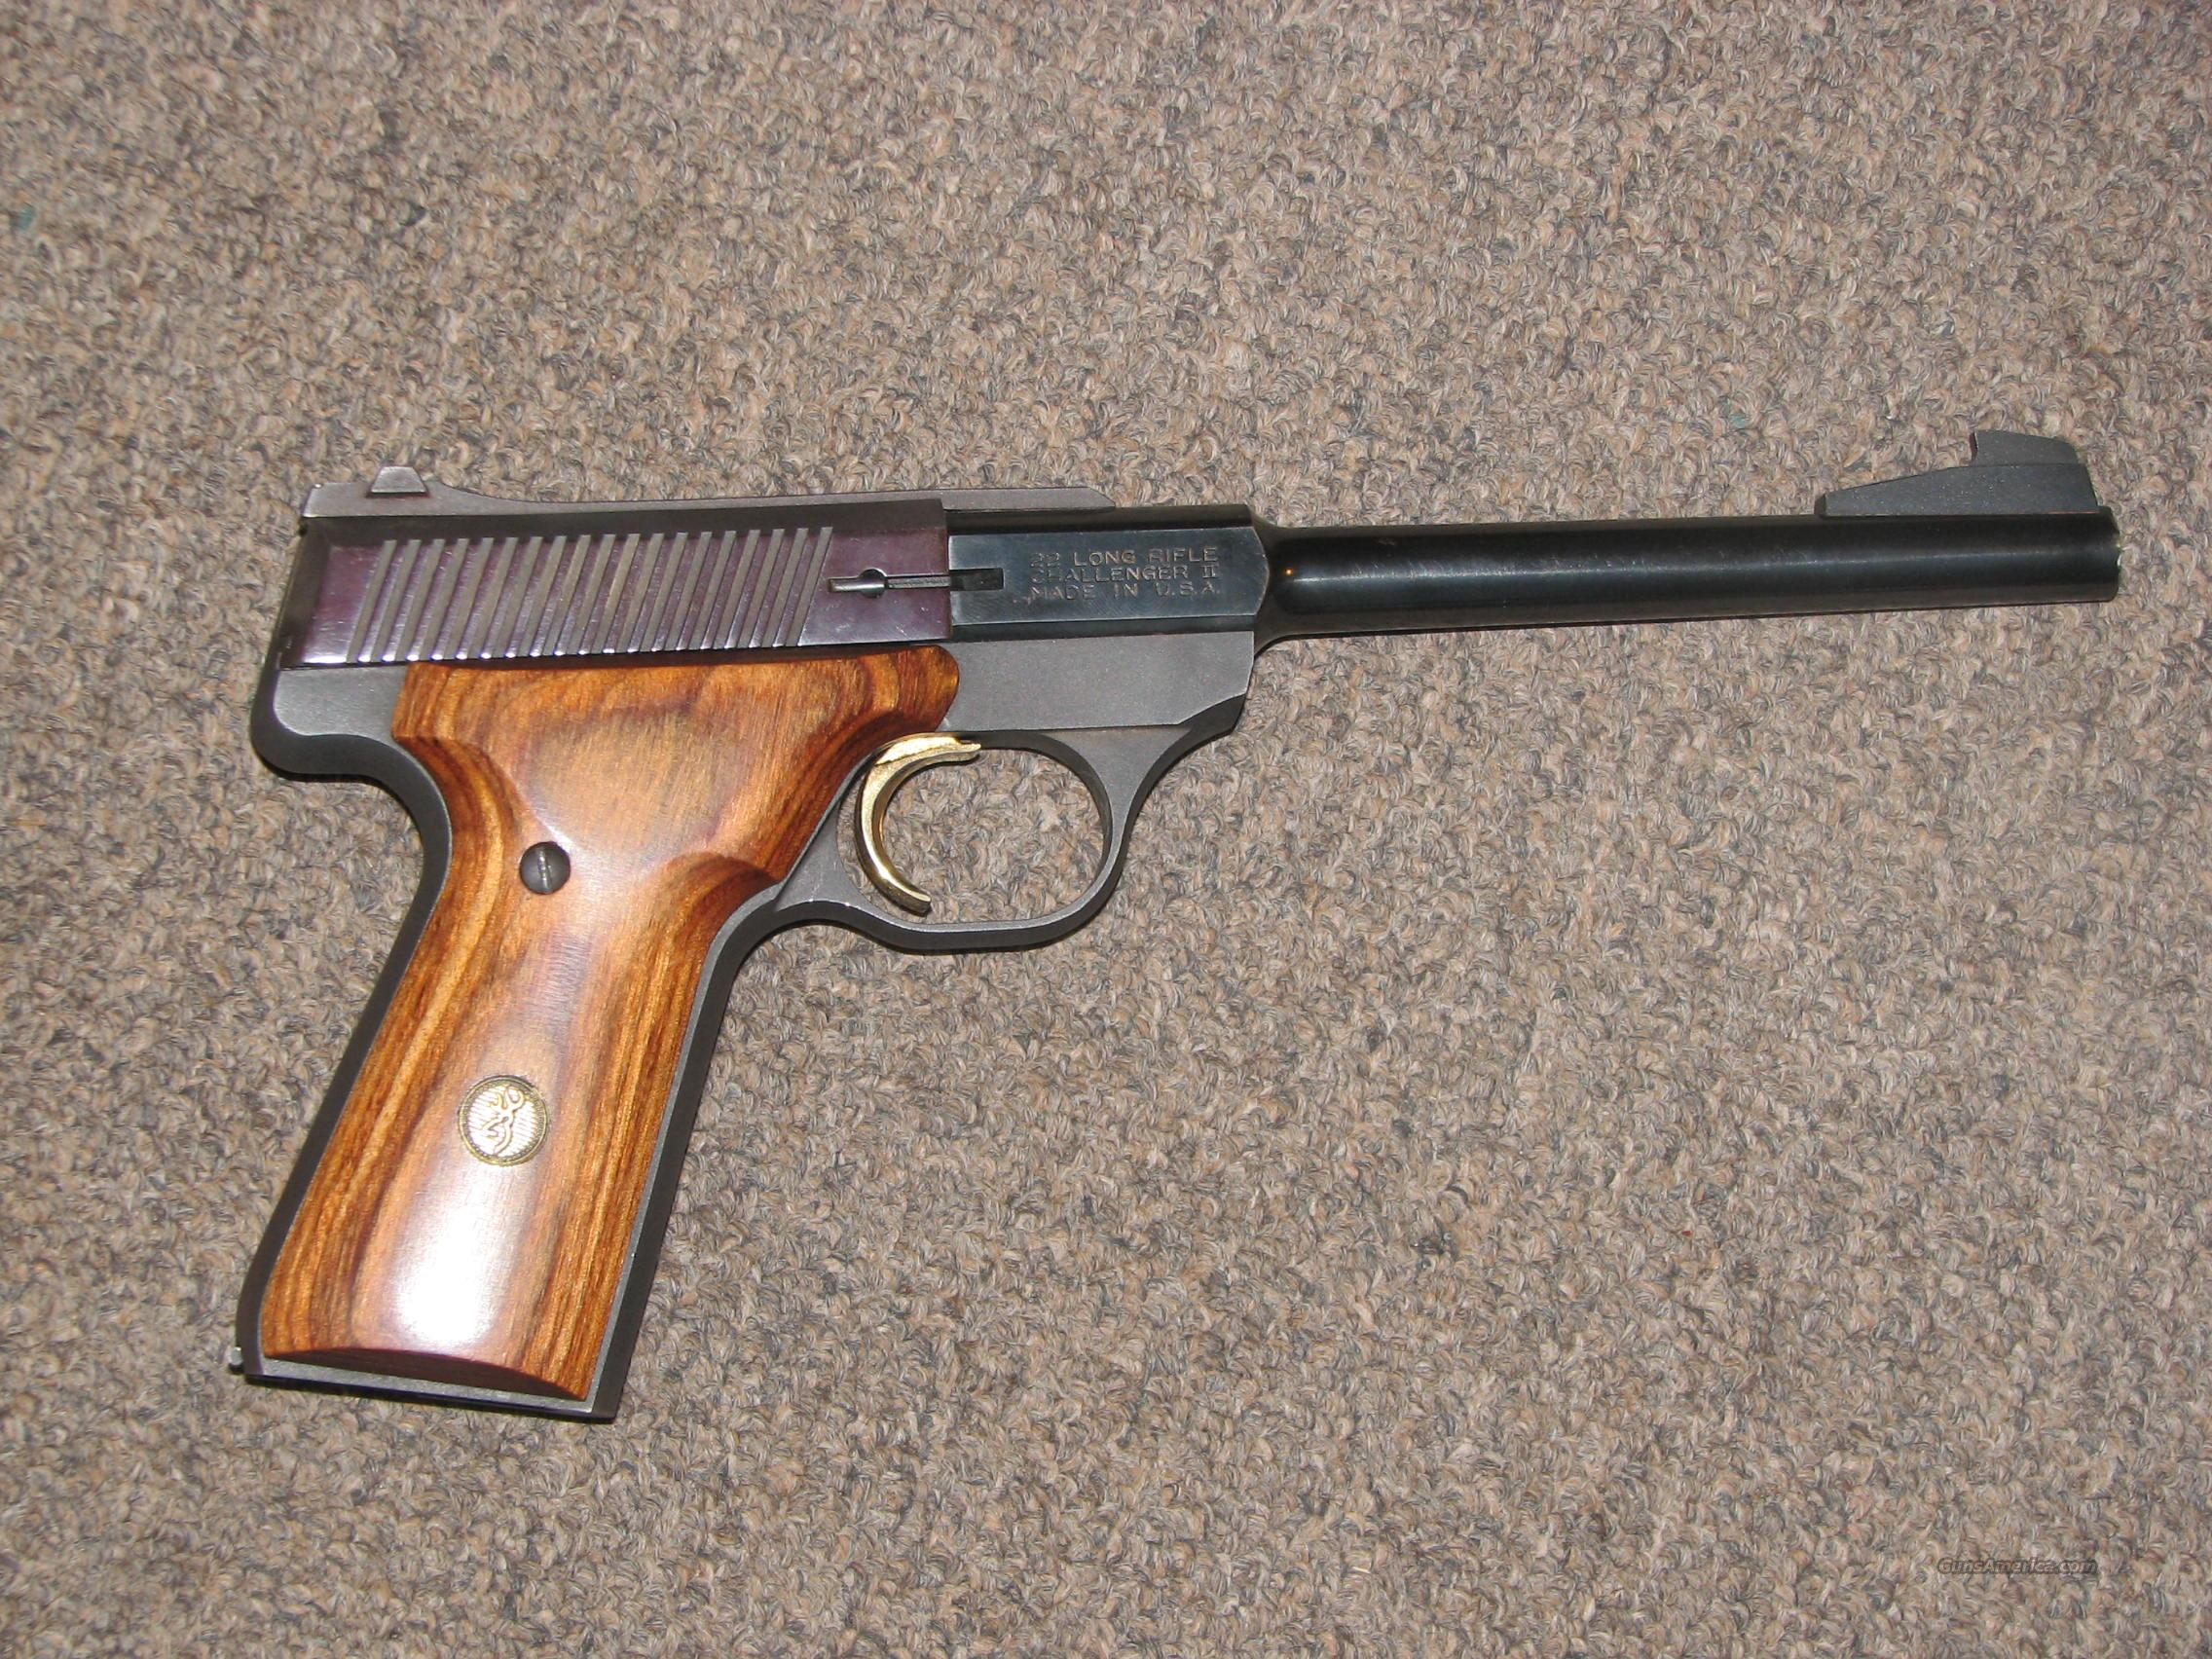 BROWNING CHALLENGER II .22 LR  Guns > Pistols > Browning Pistols > Other Autos